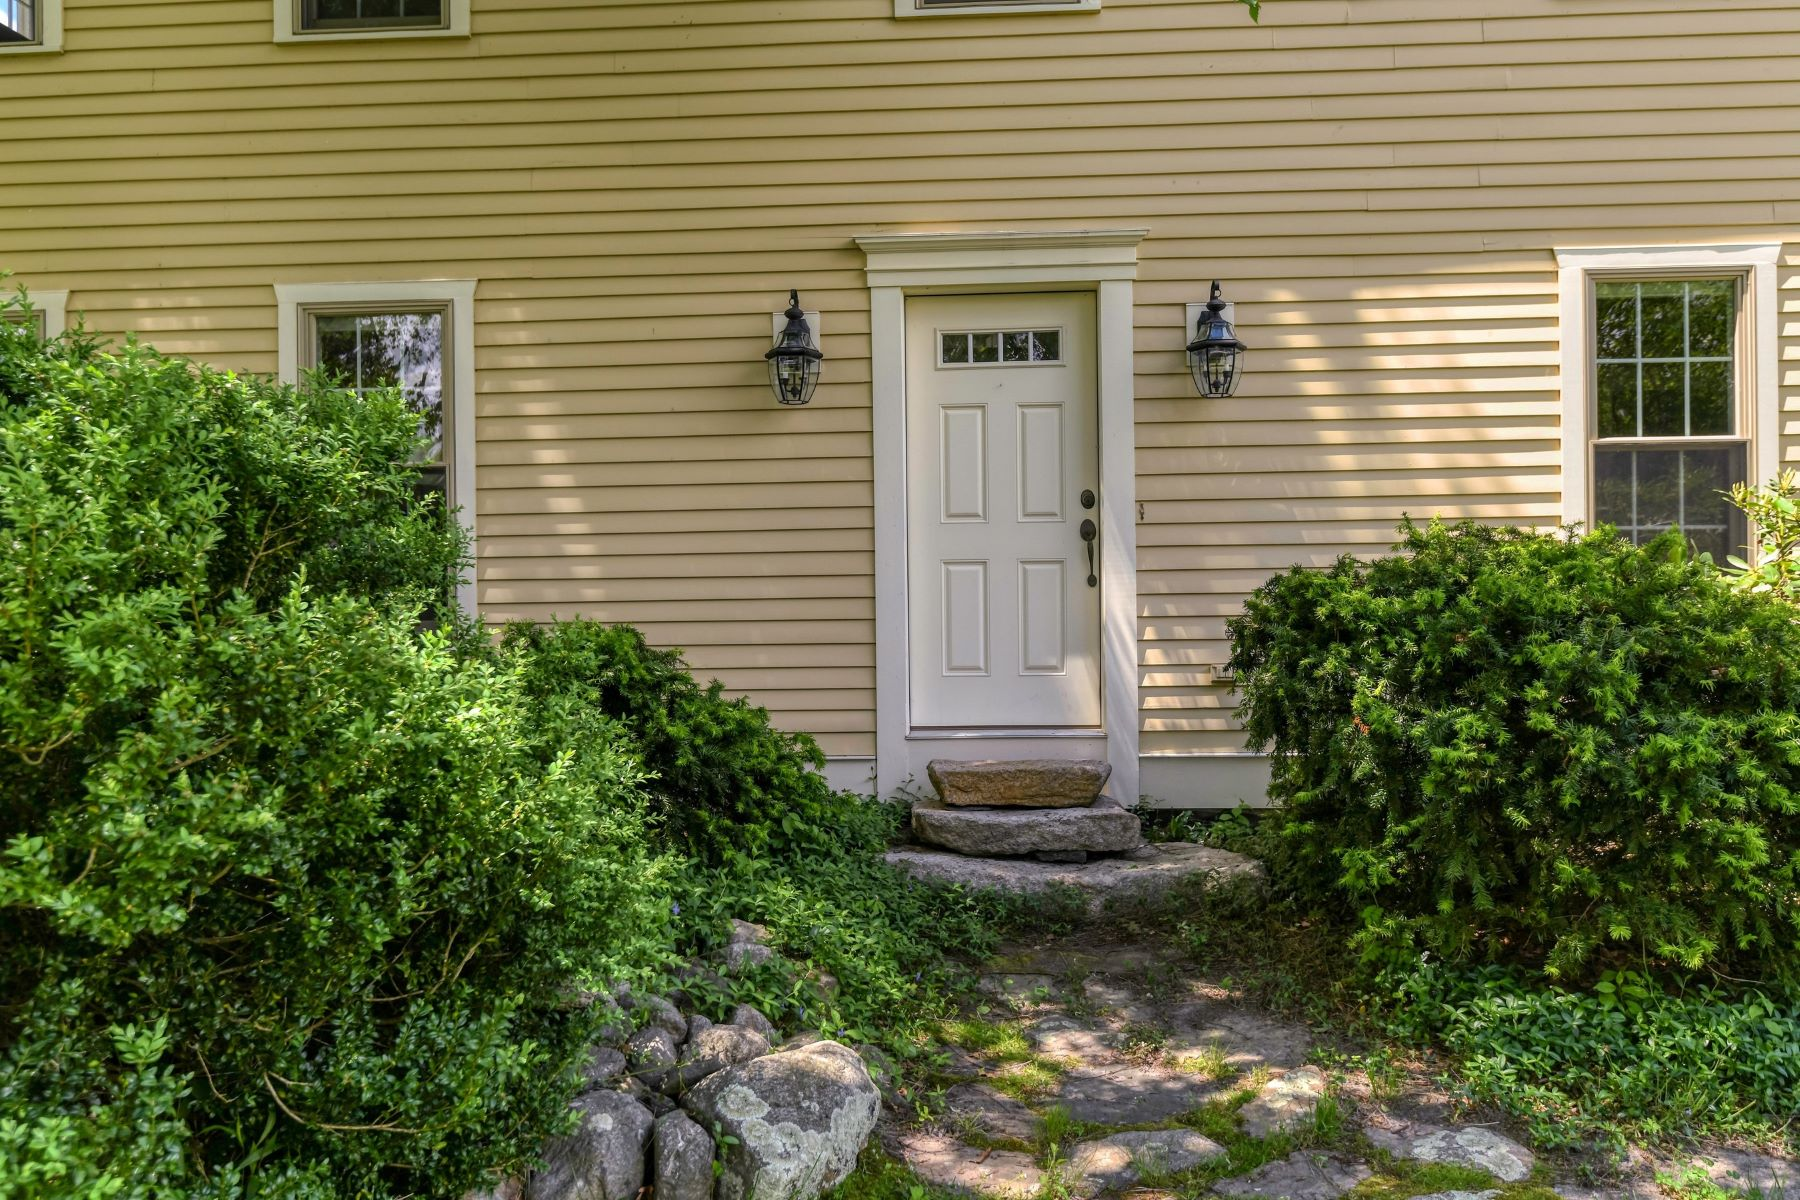 Additional photo for property listing at Idyllic South Tiverton Colonial 61 Peaceful Way 蒂弗顿, 罗得岛 02878 美国